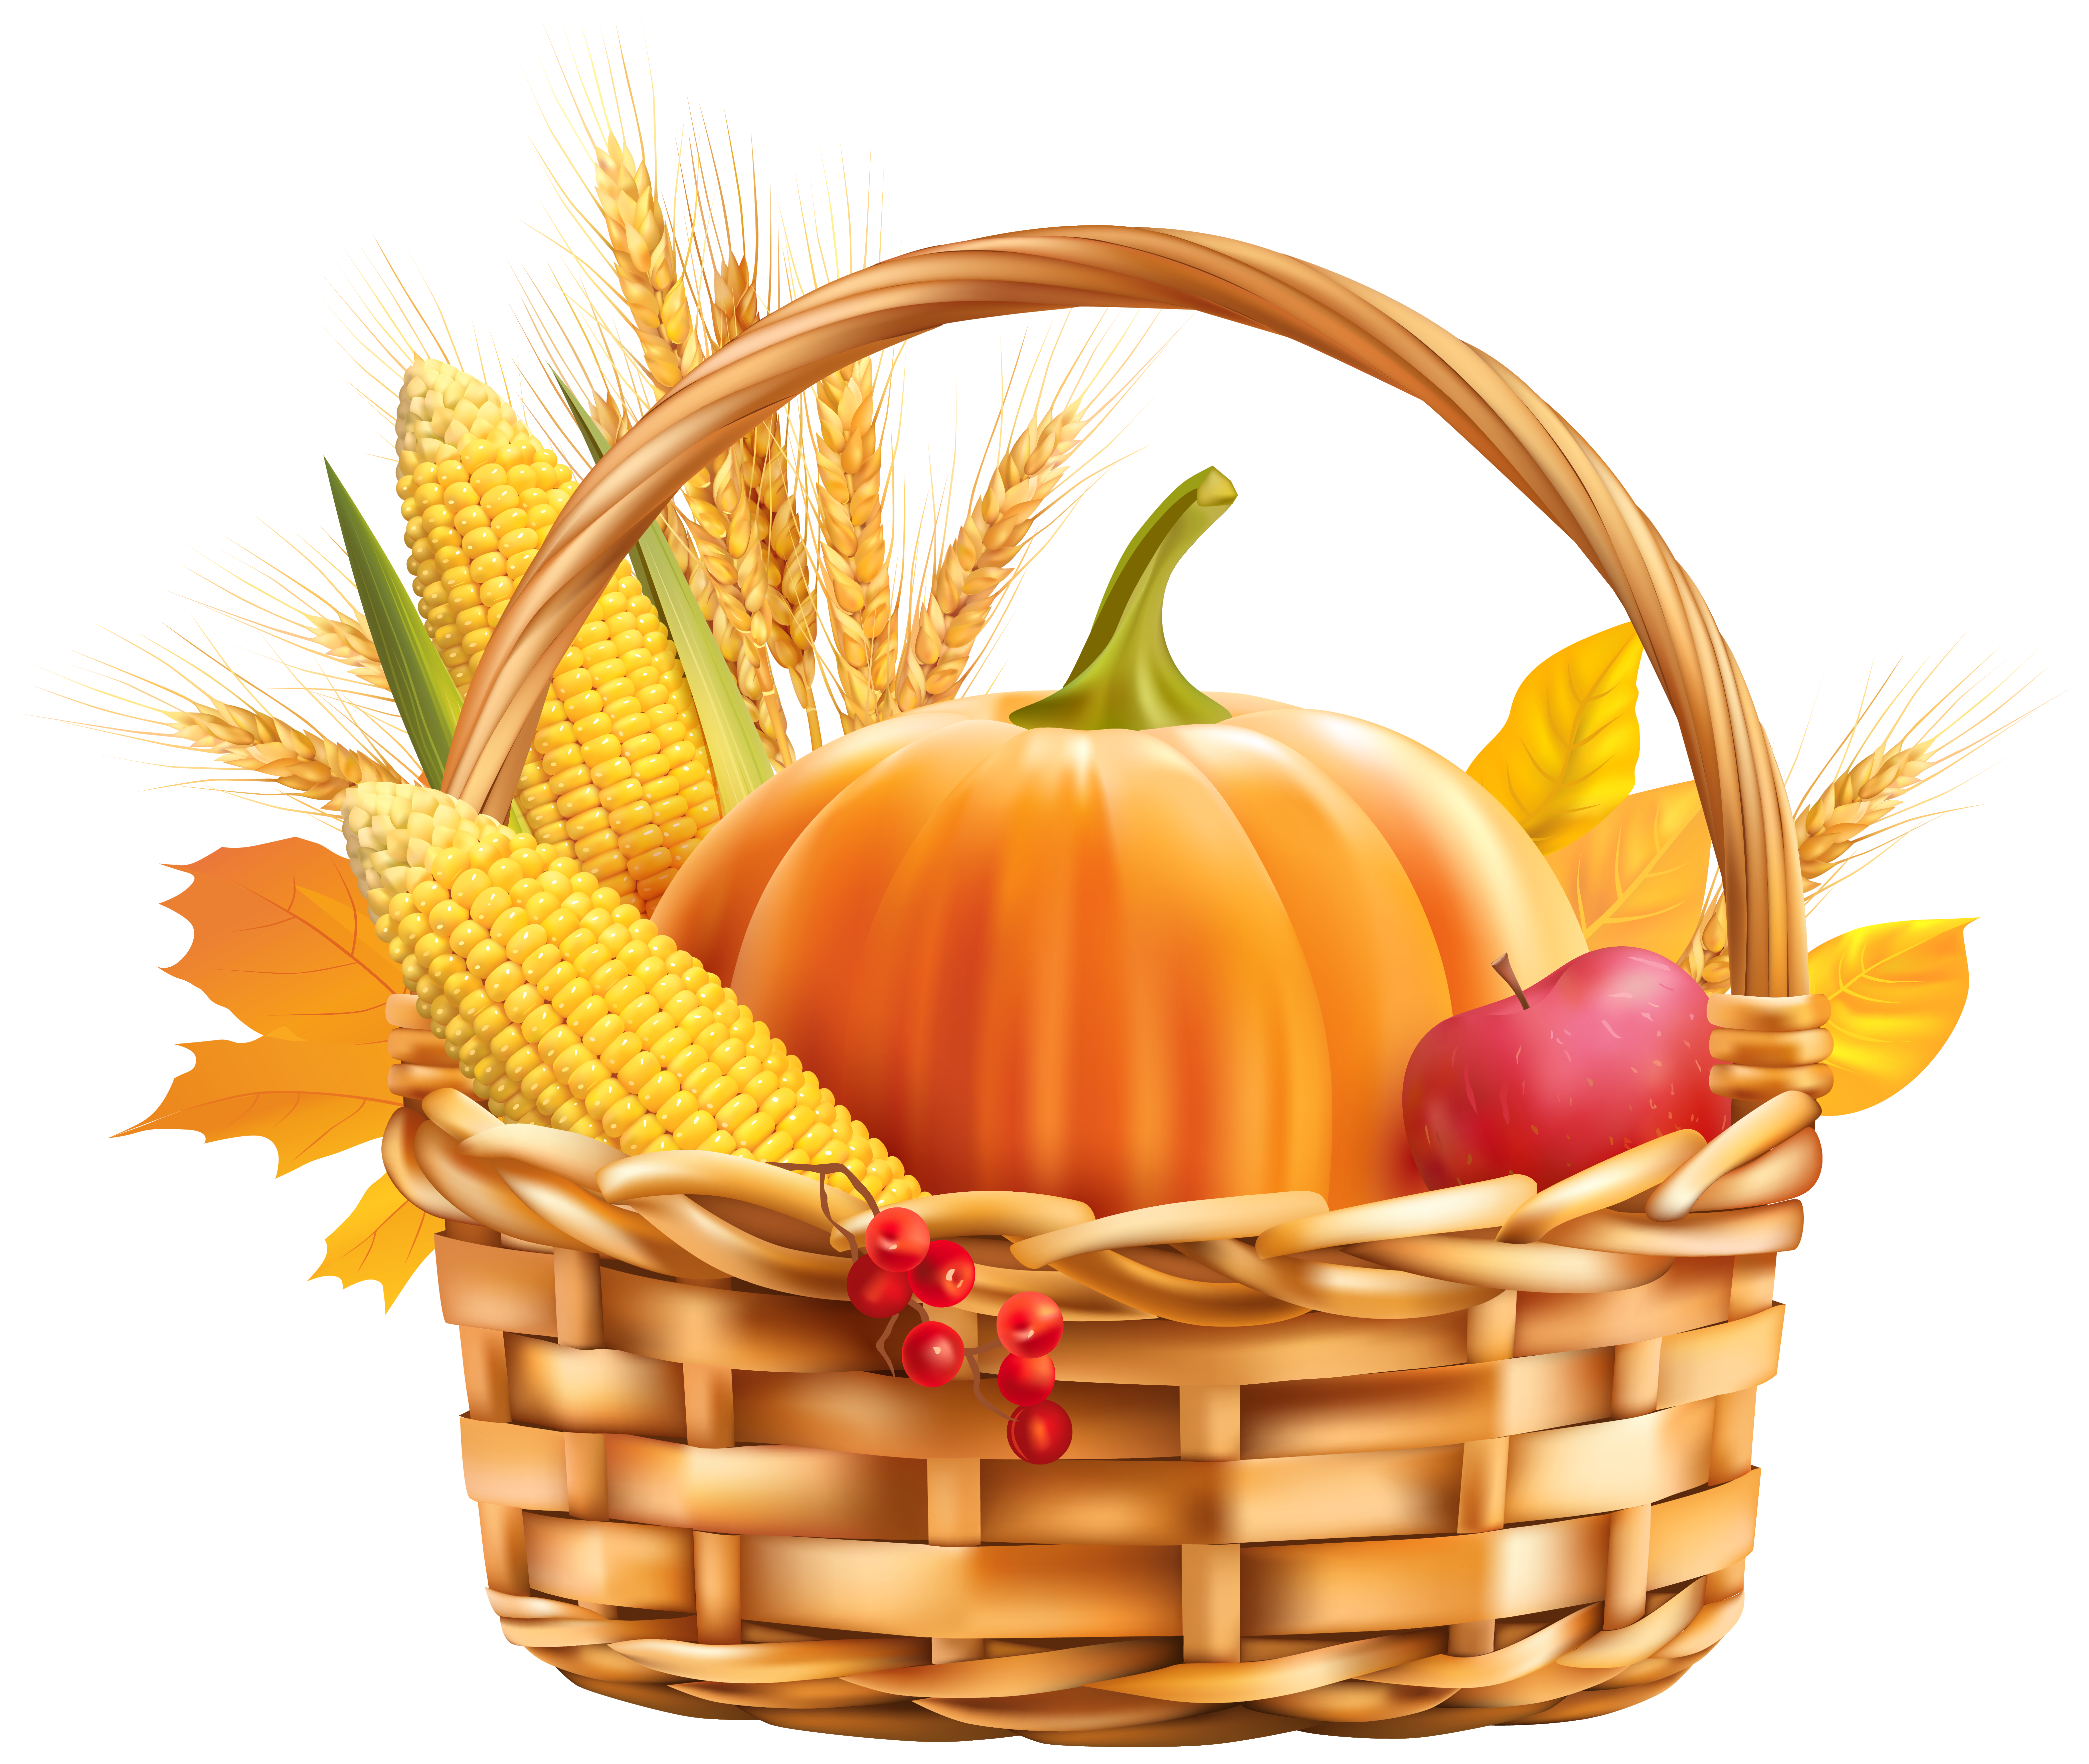 Free clipart image harvest.